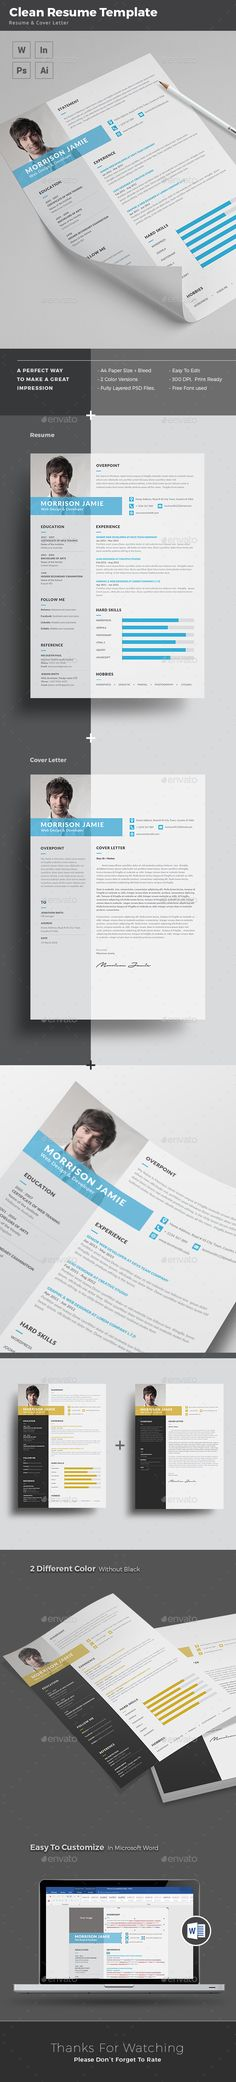 Resume  — PSD Template #resume creative #resume portfolio • Download ➝ https://graphicriver.net/item/resume/15355494?ref=pxcr